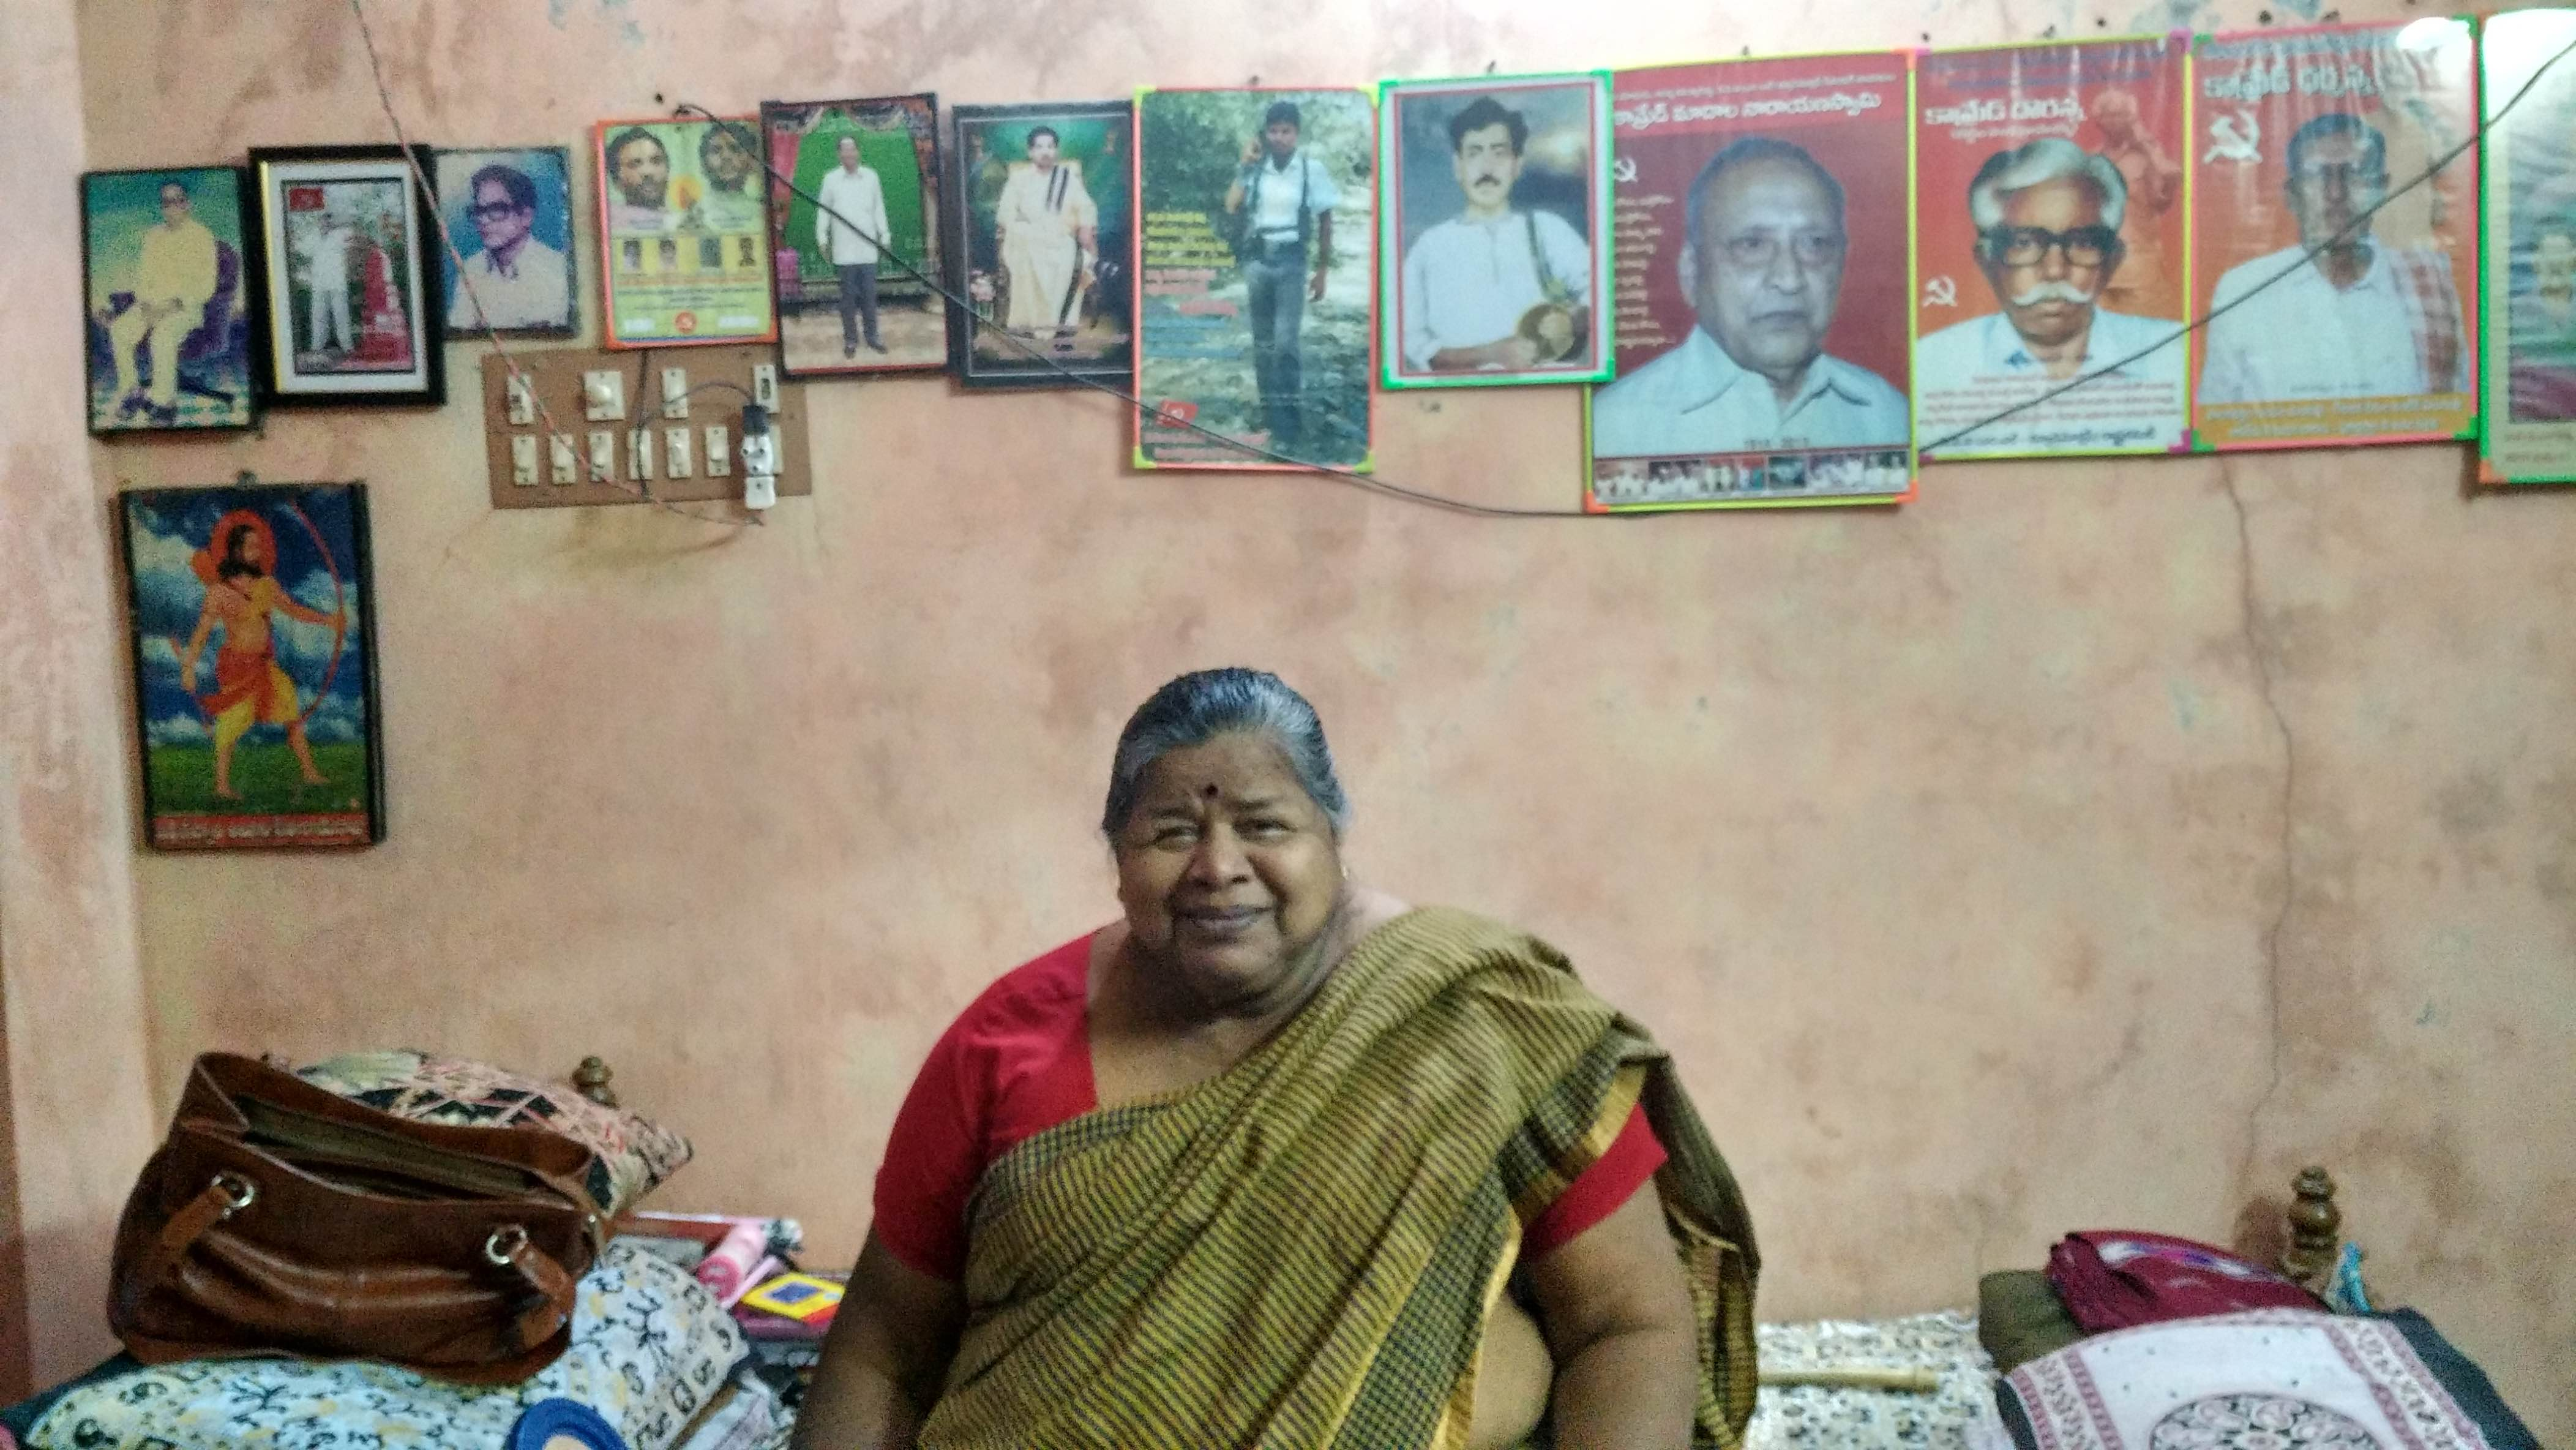 In Srikakulam, A Mother Relives Choices She Made 50 Years Ago – To Pick up a Gun, To Give up a Baby